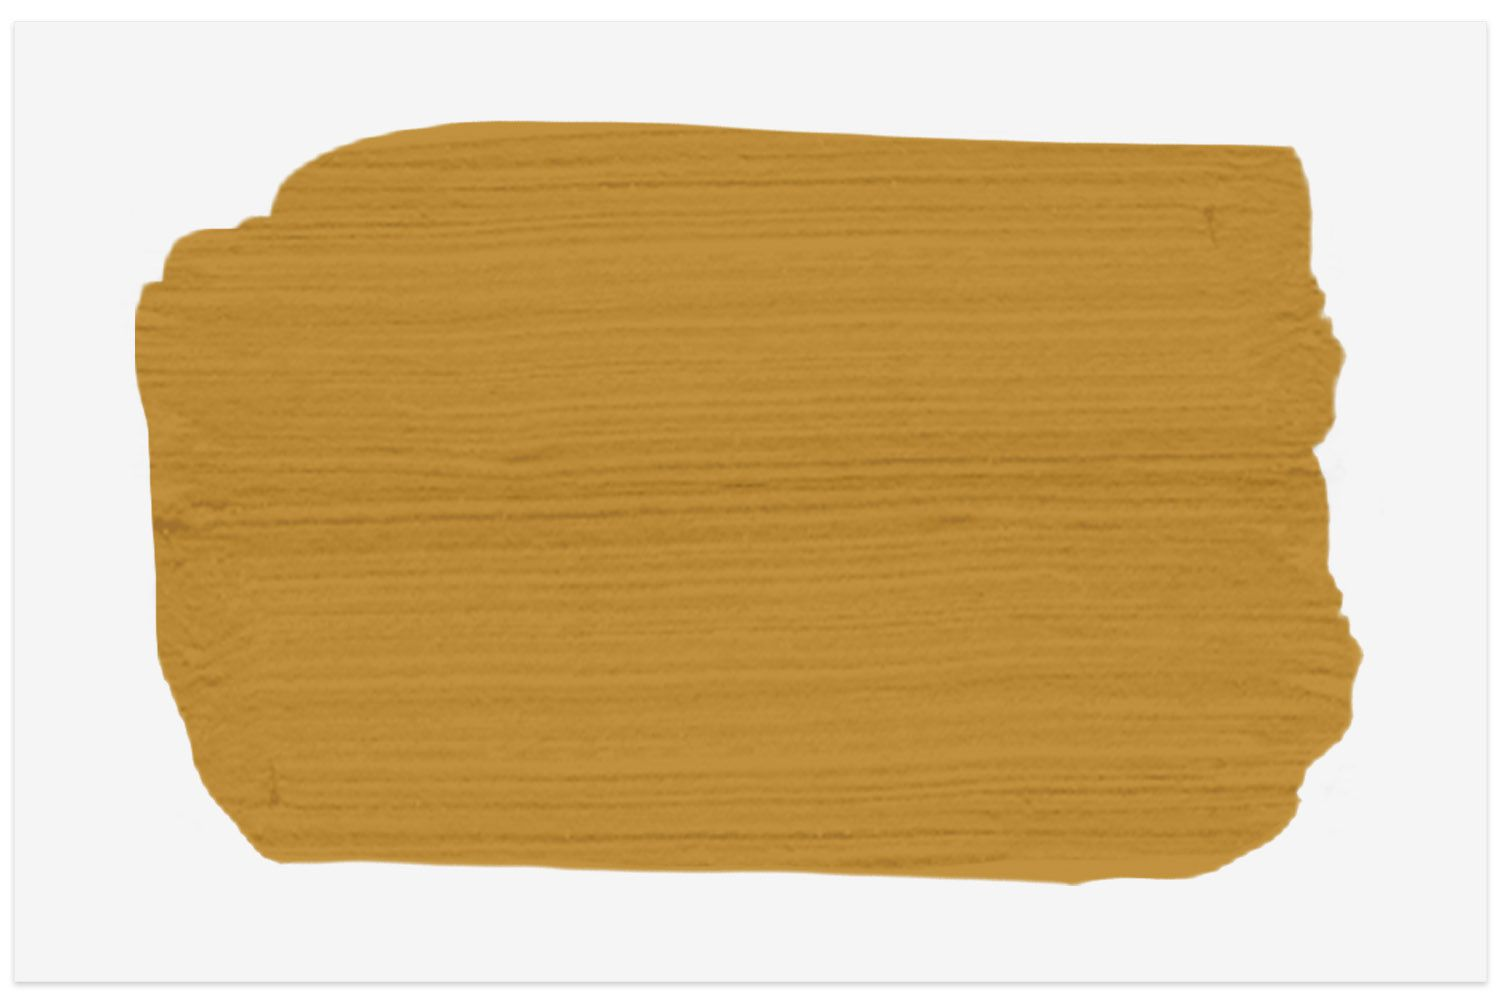 Sherwin-Williams Honeycomb paint swatch for a warm dining room